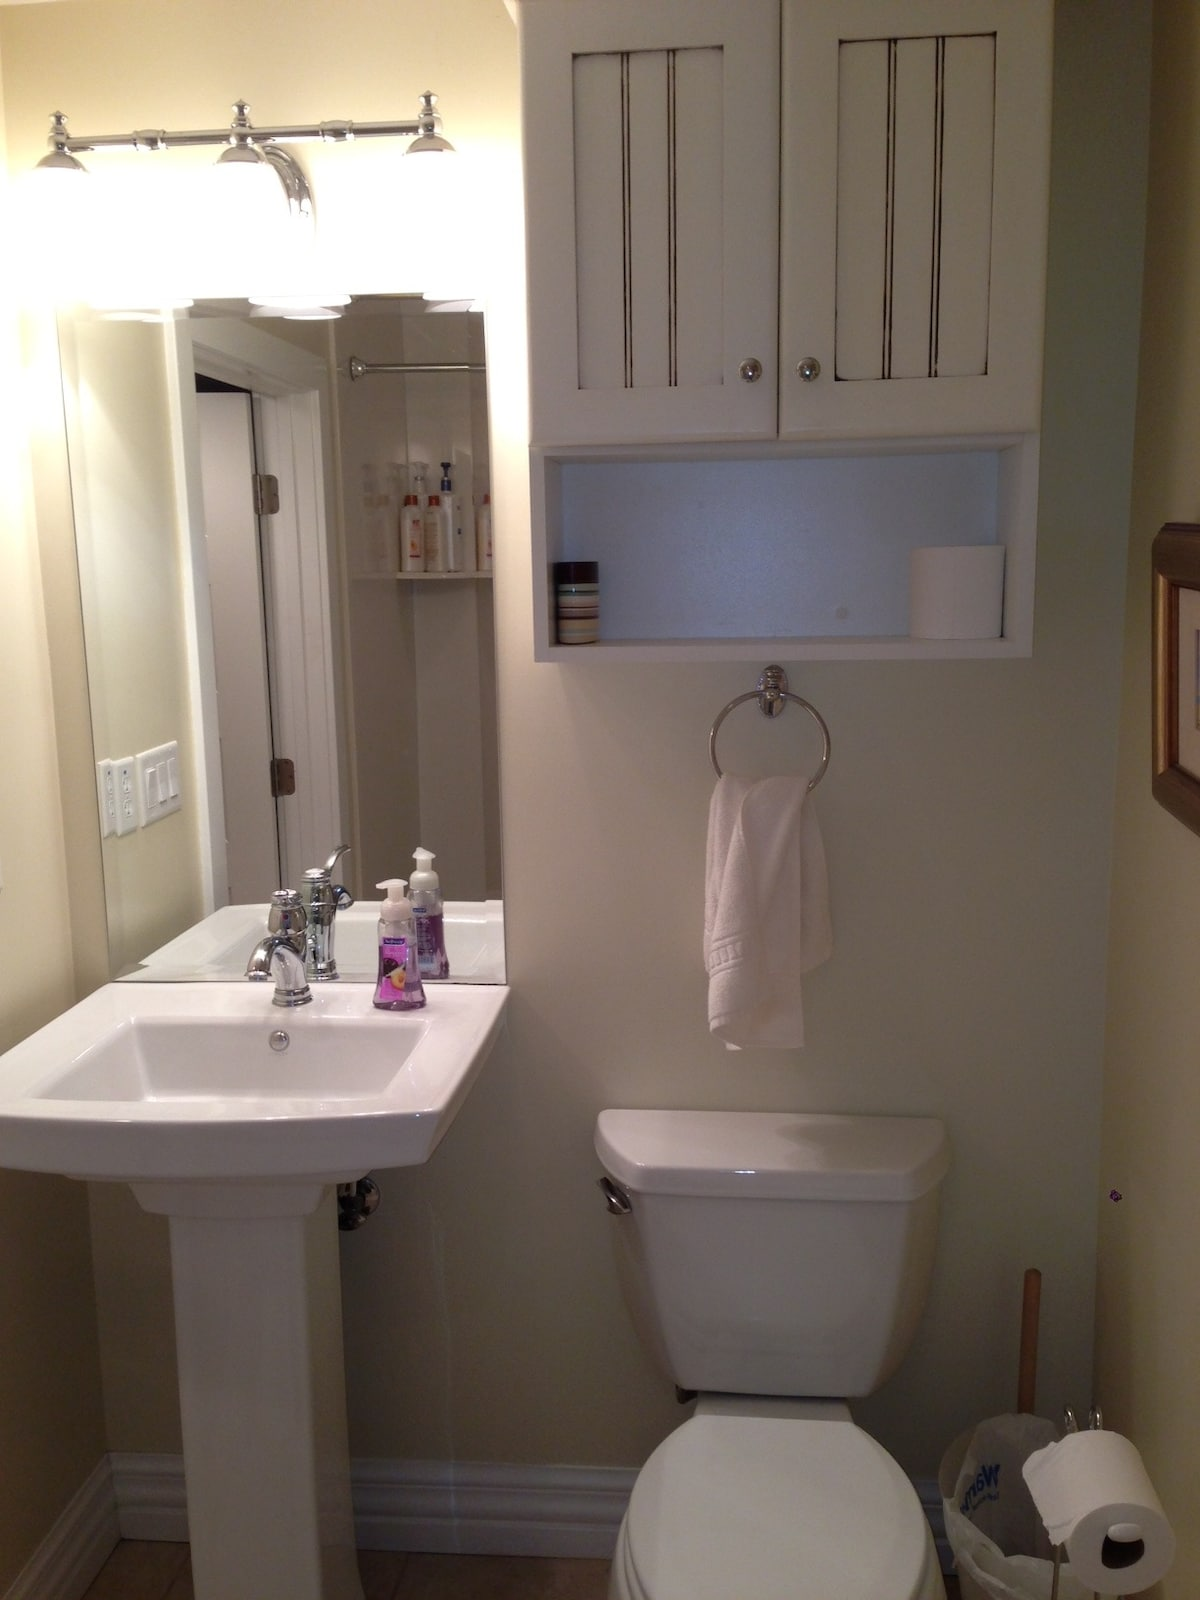 Brand new bathroom with supplies if needed.